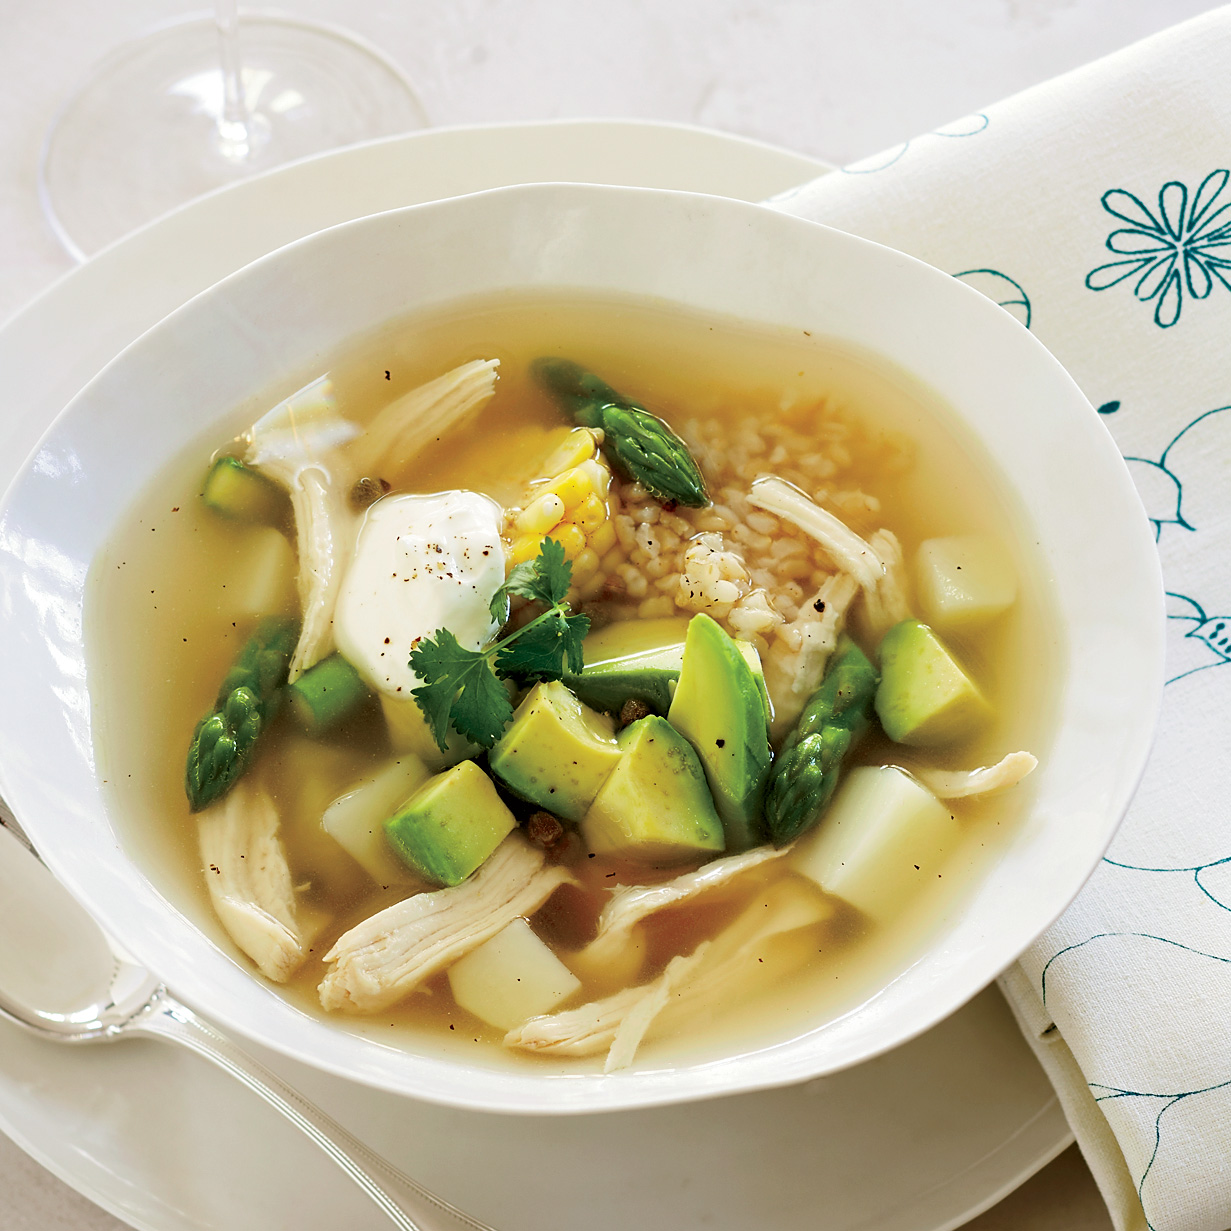 Colombian chicken soup recipe doris esther ayola orozco food wine forumfinder Image collections